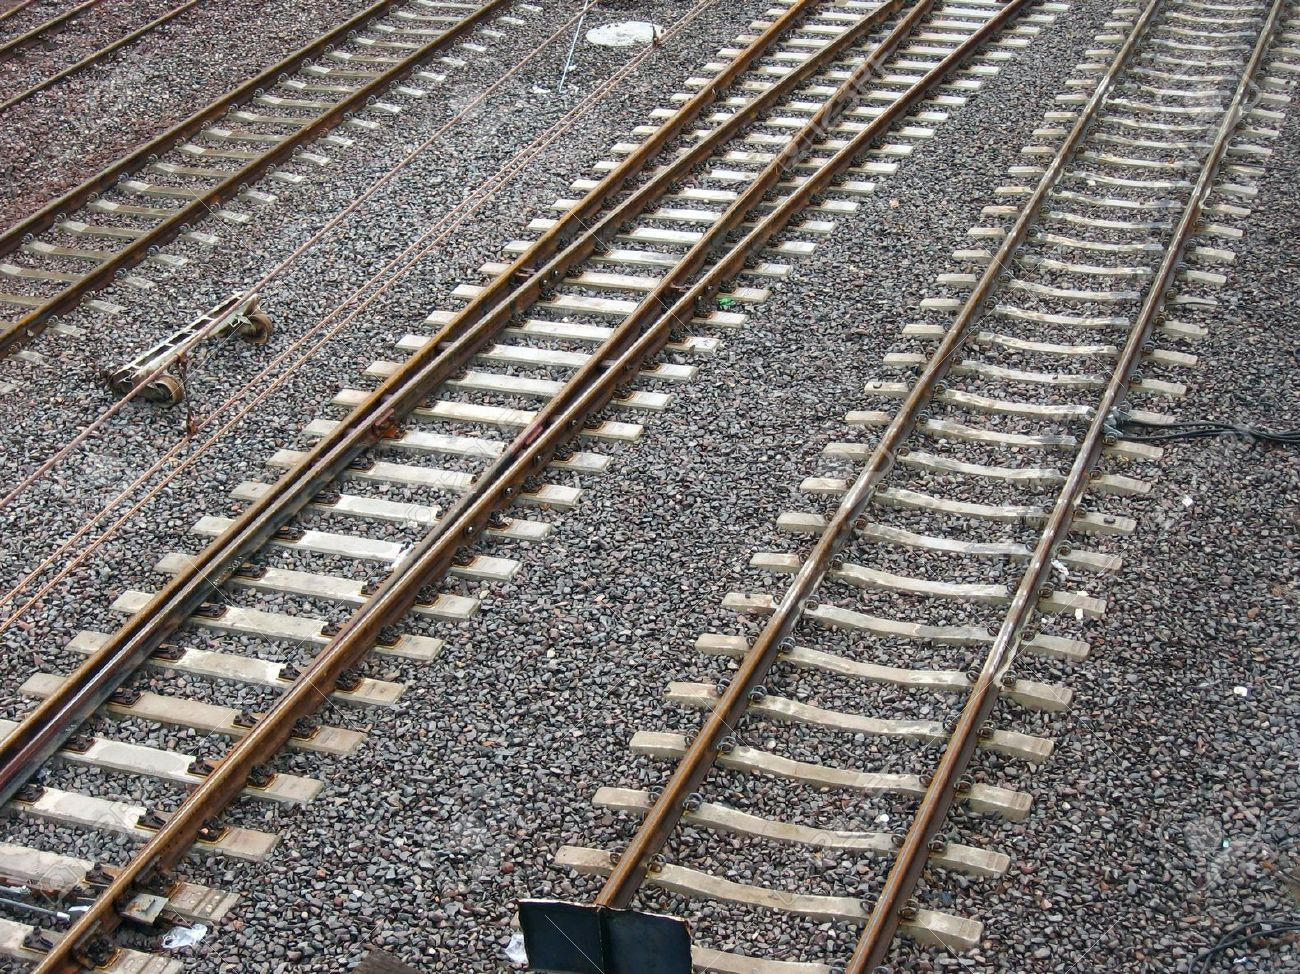 3533720-Parallel-lines-of-rusted-railway-tracks-set-in-grey-moisty-clinker--Stock-Photo